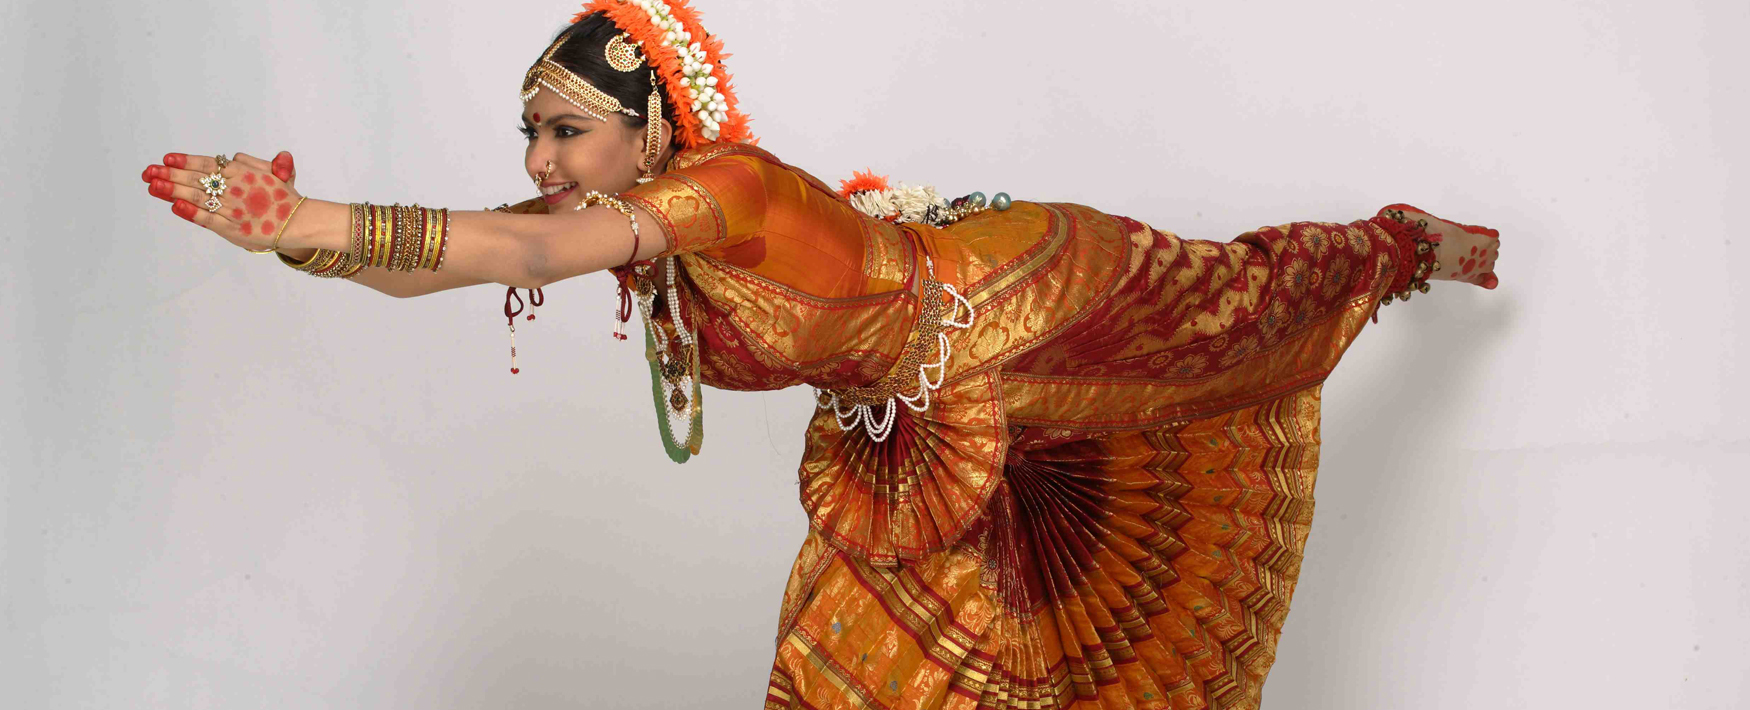 The Bharatanatyam dancer who is sought for choreographer & Director